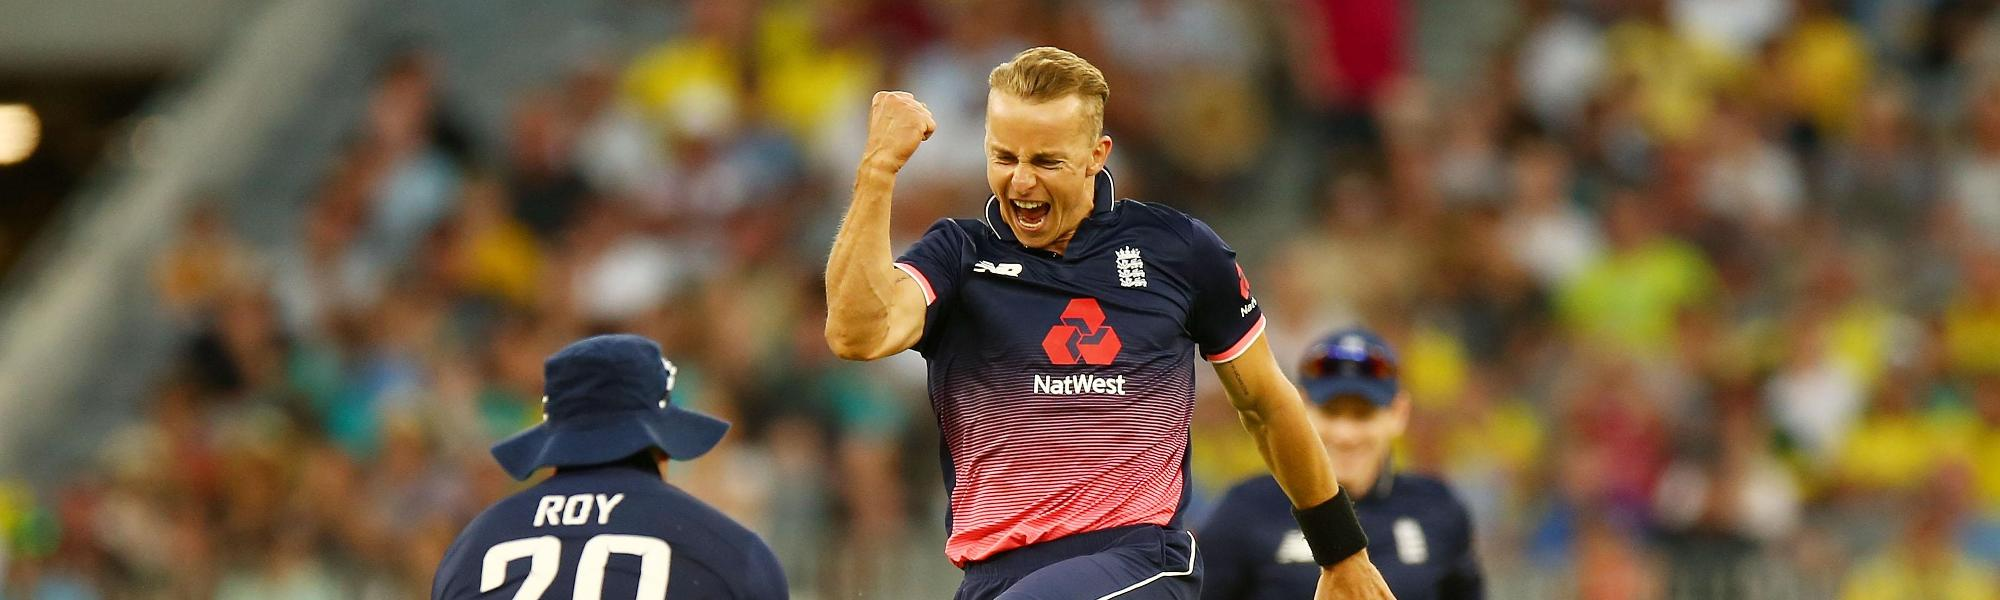 Tom Curran took figures of 5/35 from his 10 overs